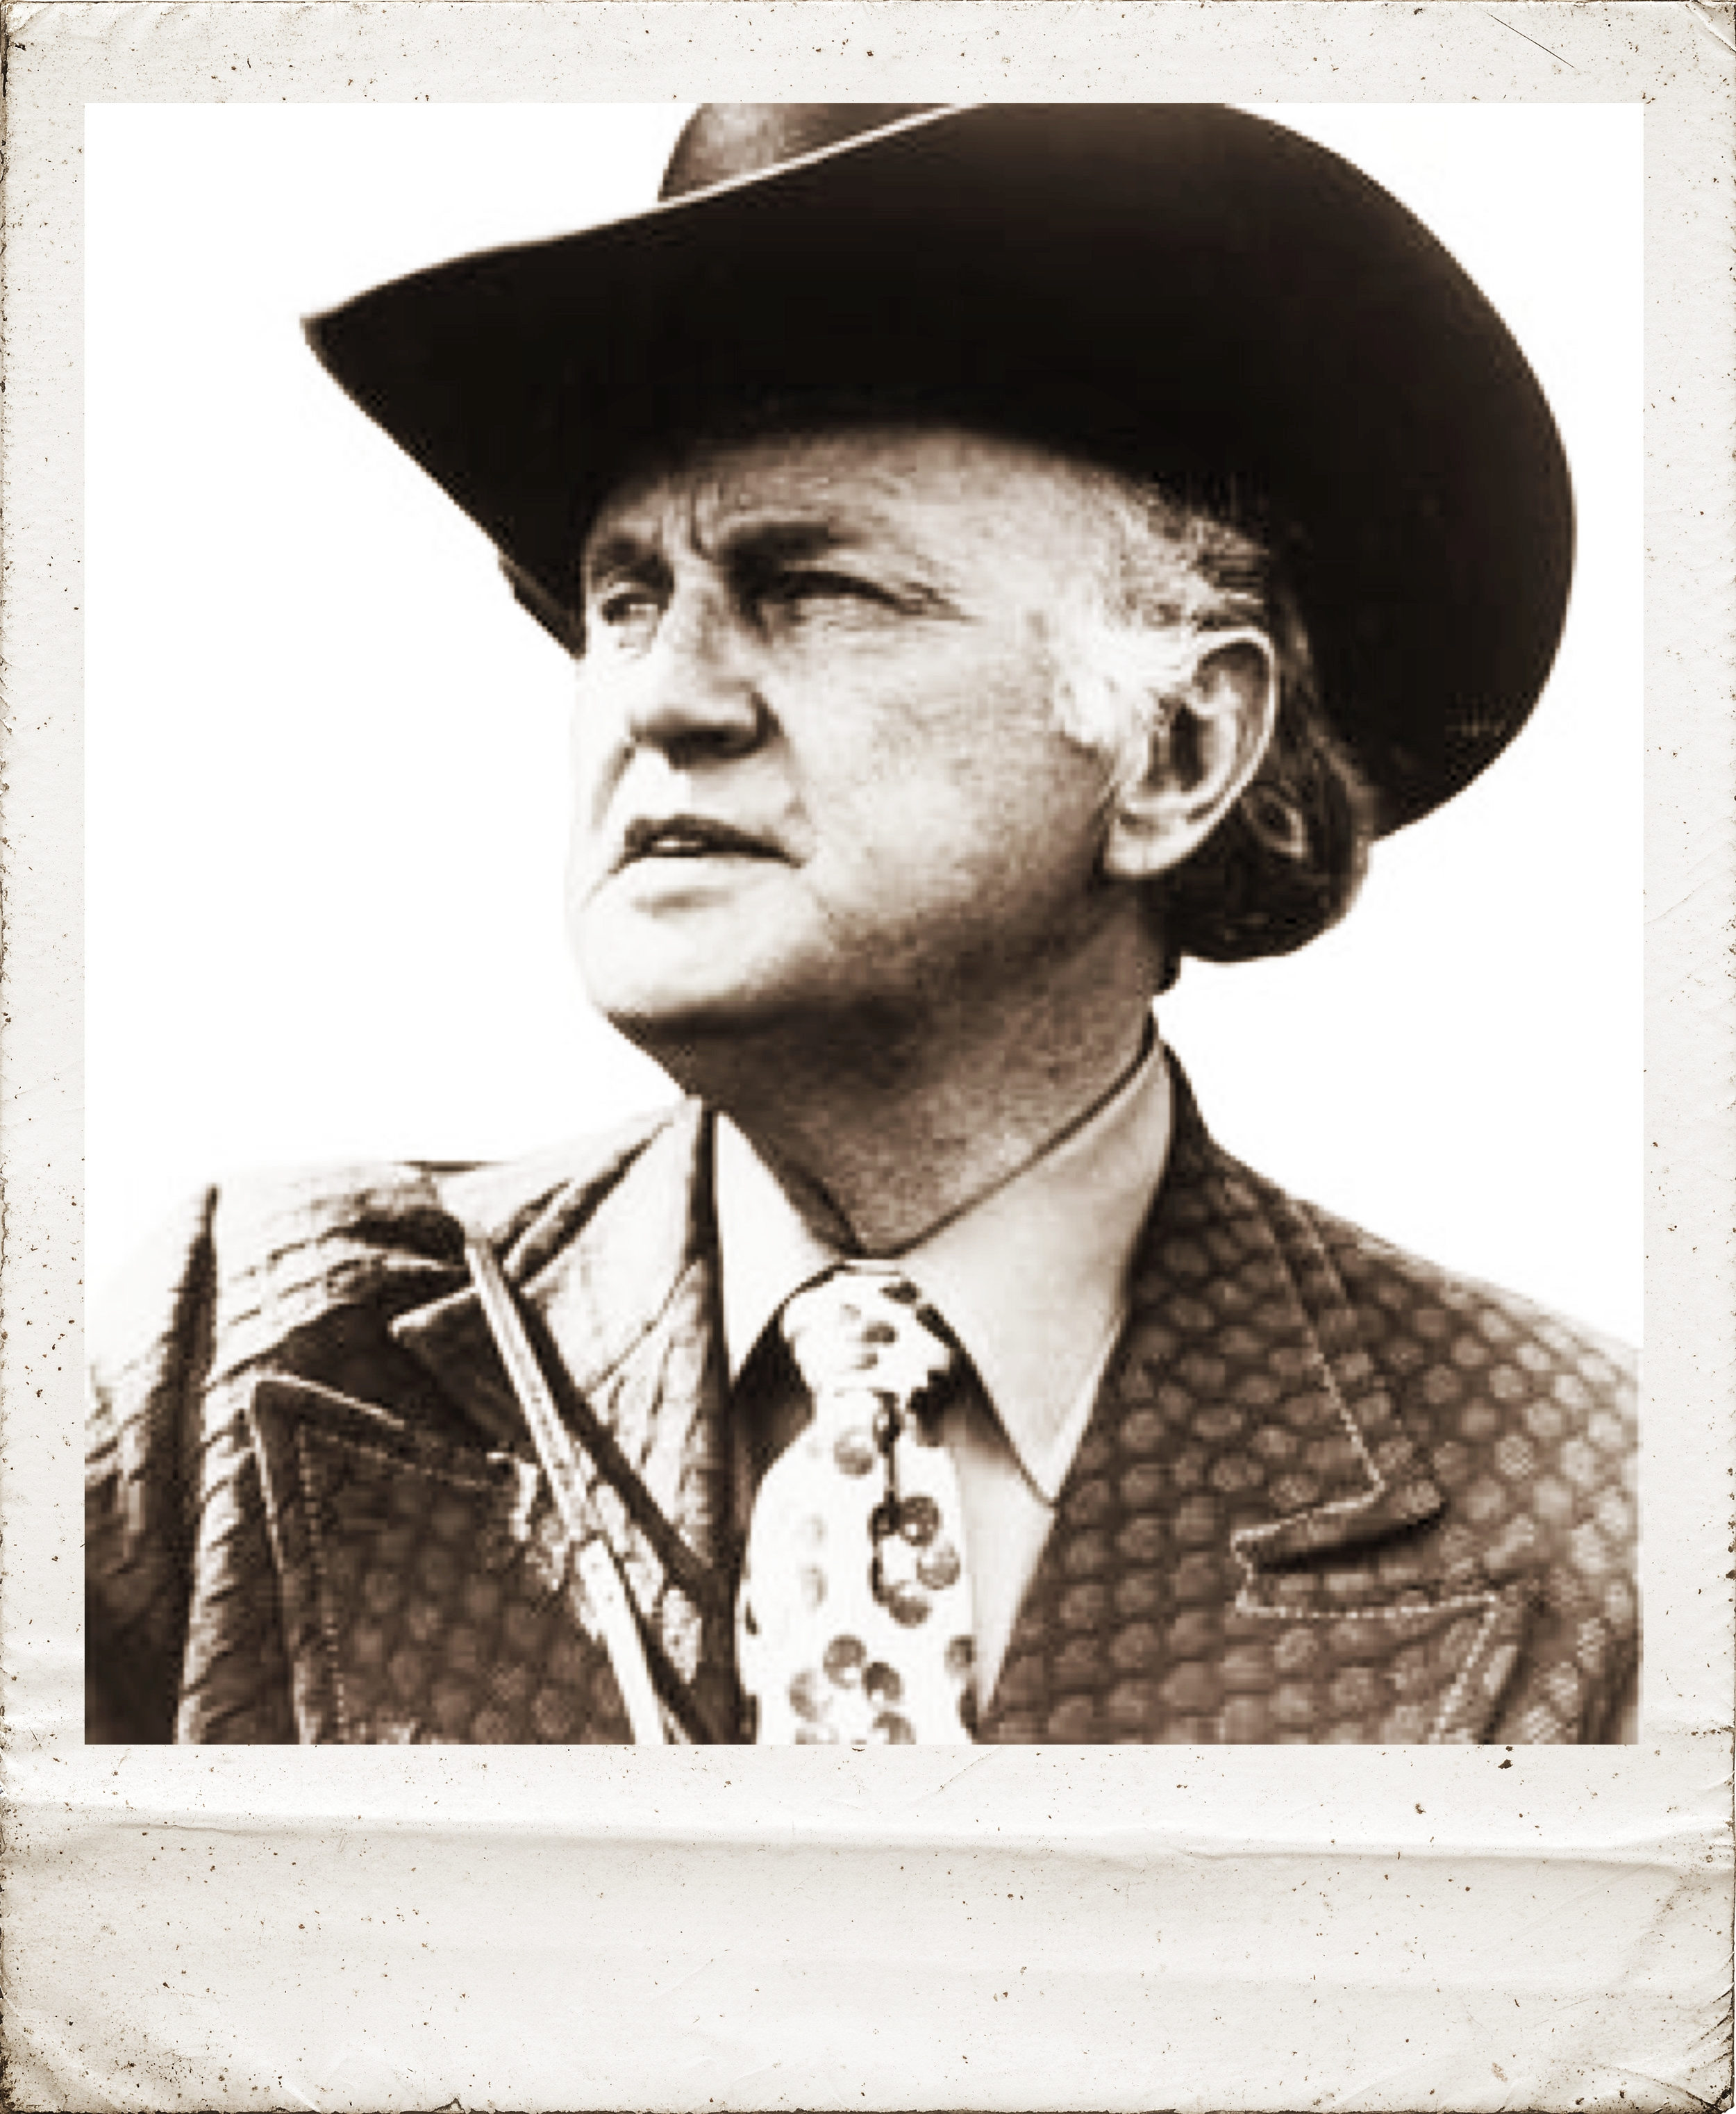 Undisputed Father of Bluegrass Bill Monroe - ...started the Monroe Brothers, the precursor to the Bluegrass Boys, while working at an Oil Refinery in East Chicago.